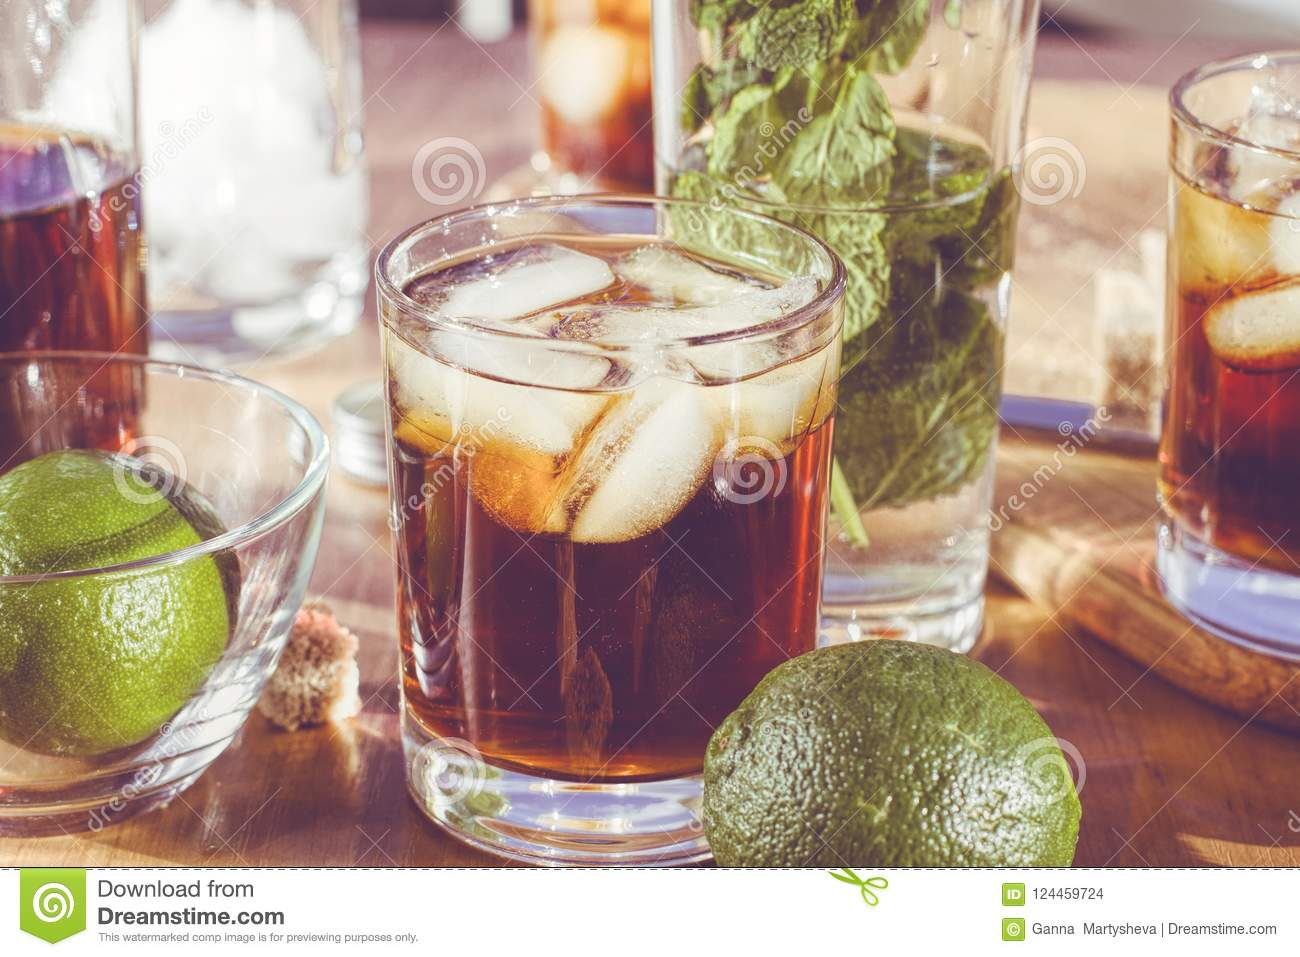 Rum with ice, Cuba Libra, alcohol, ice, glass, drink, rum,